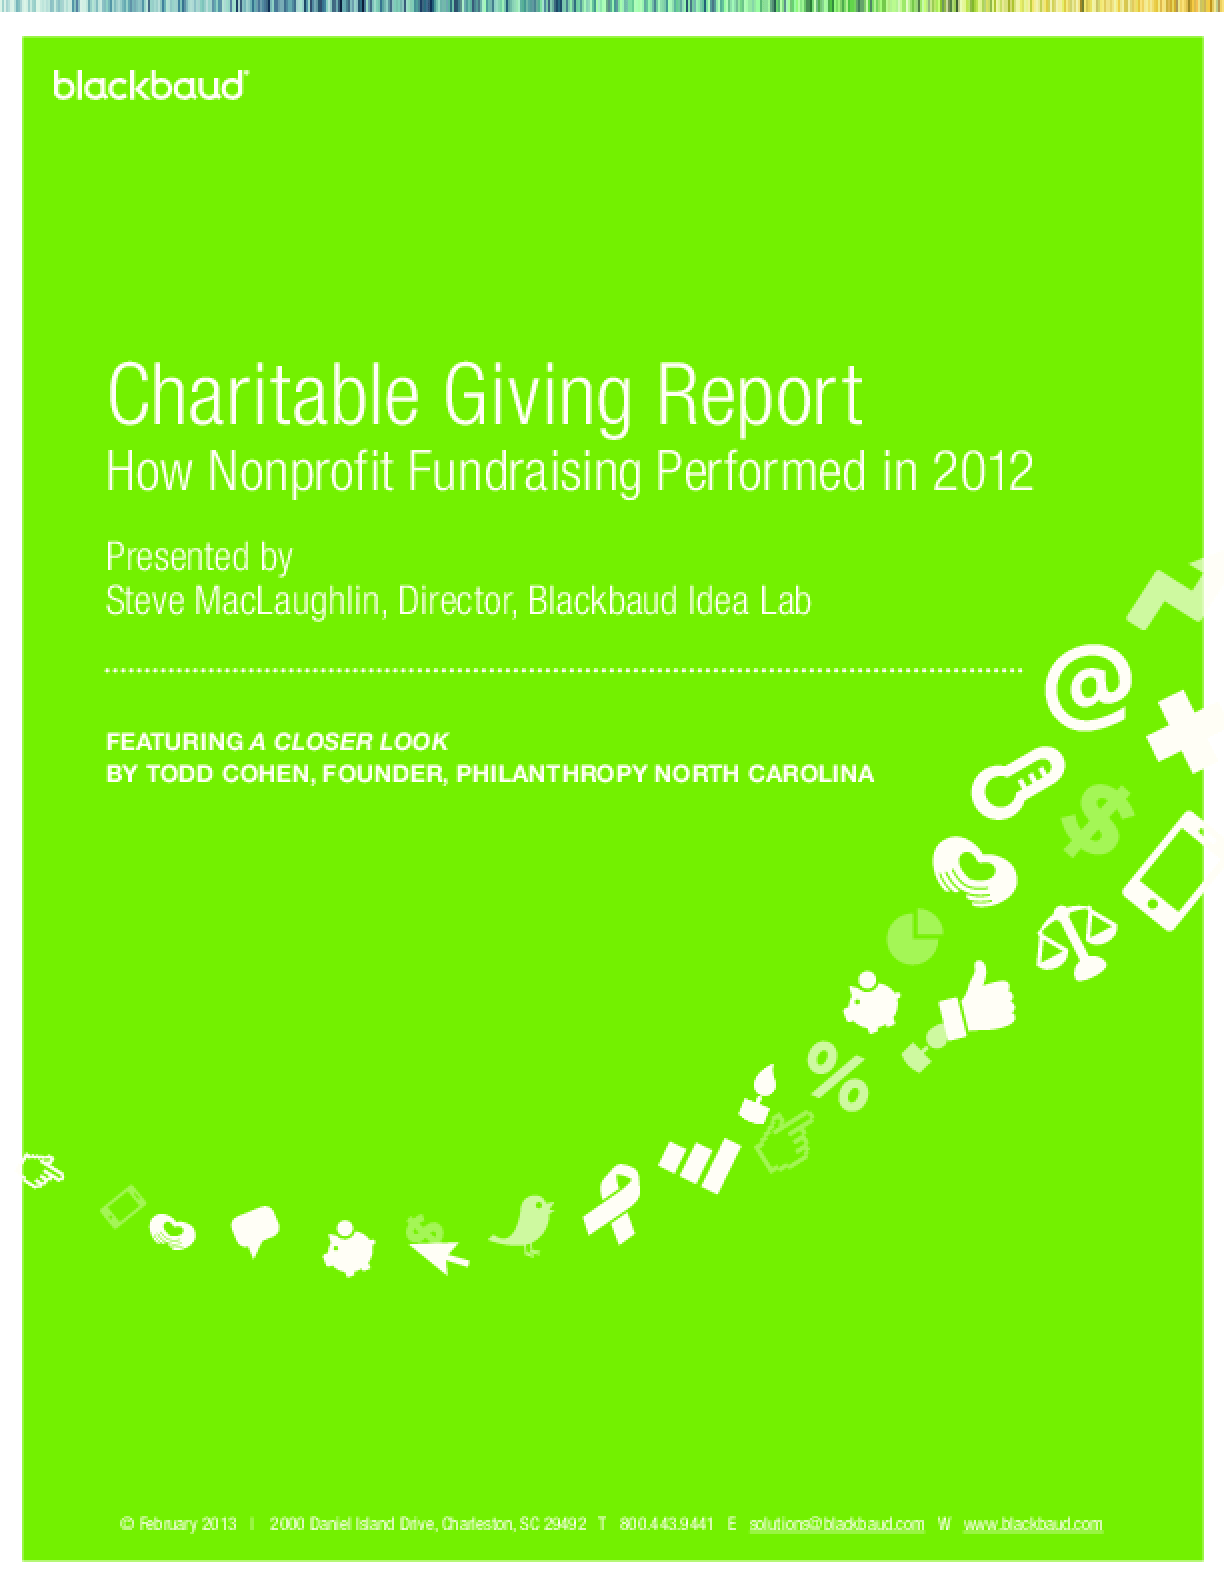 Charitable Giving Report: How Nonprofit Fundraising Performed in 2012